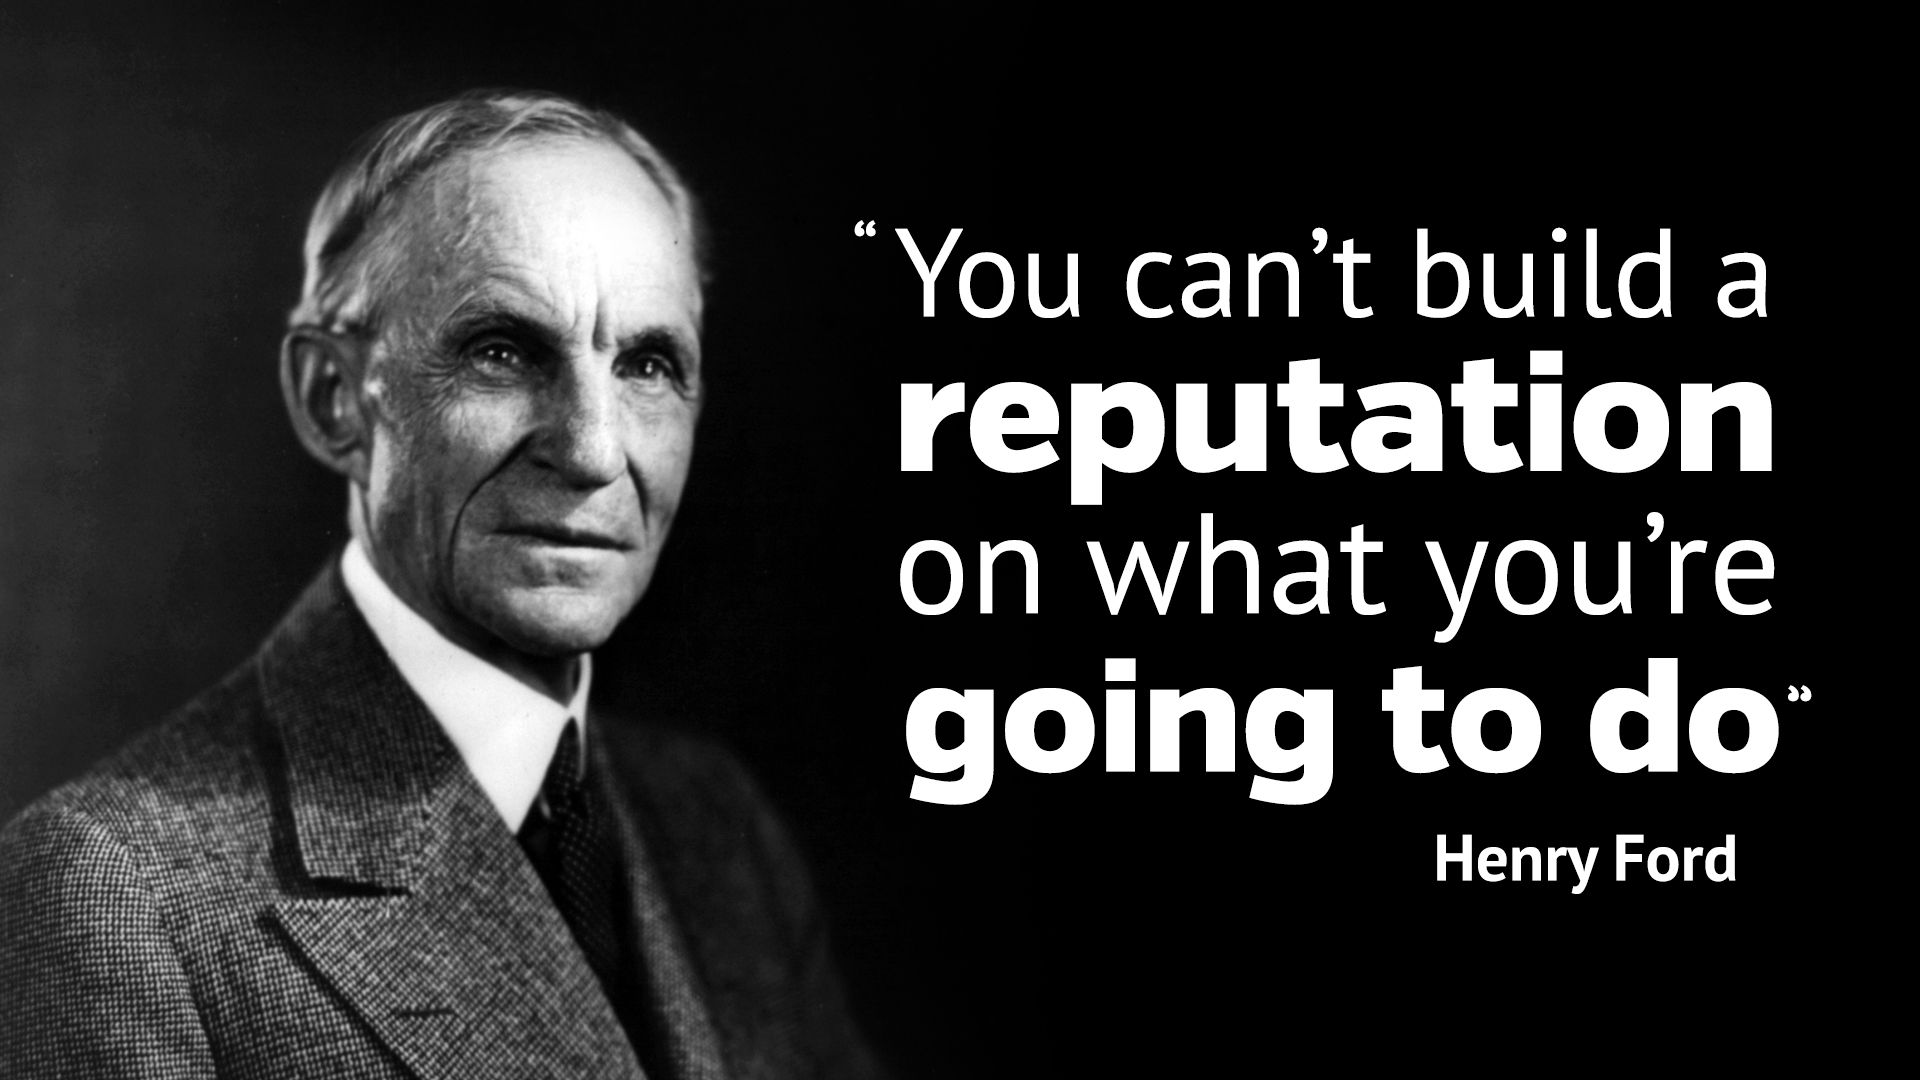 Henry Ford Quote Henry Ford Quotes Leadership Quotes Henry Ford